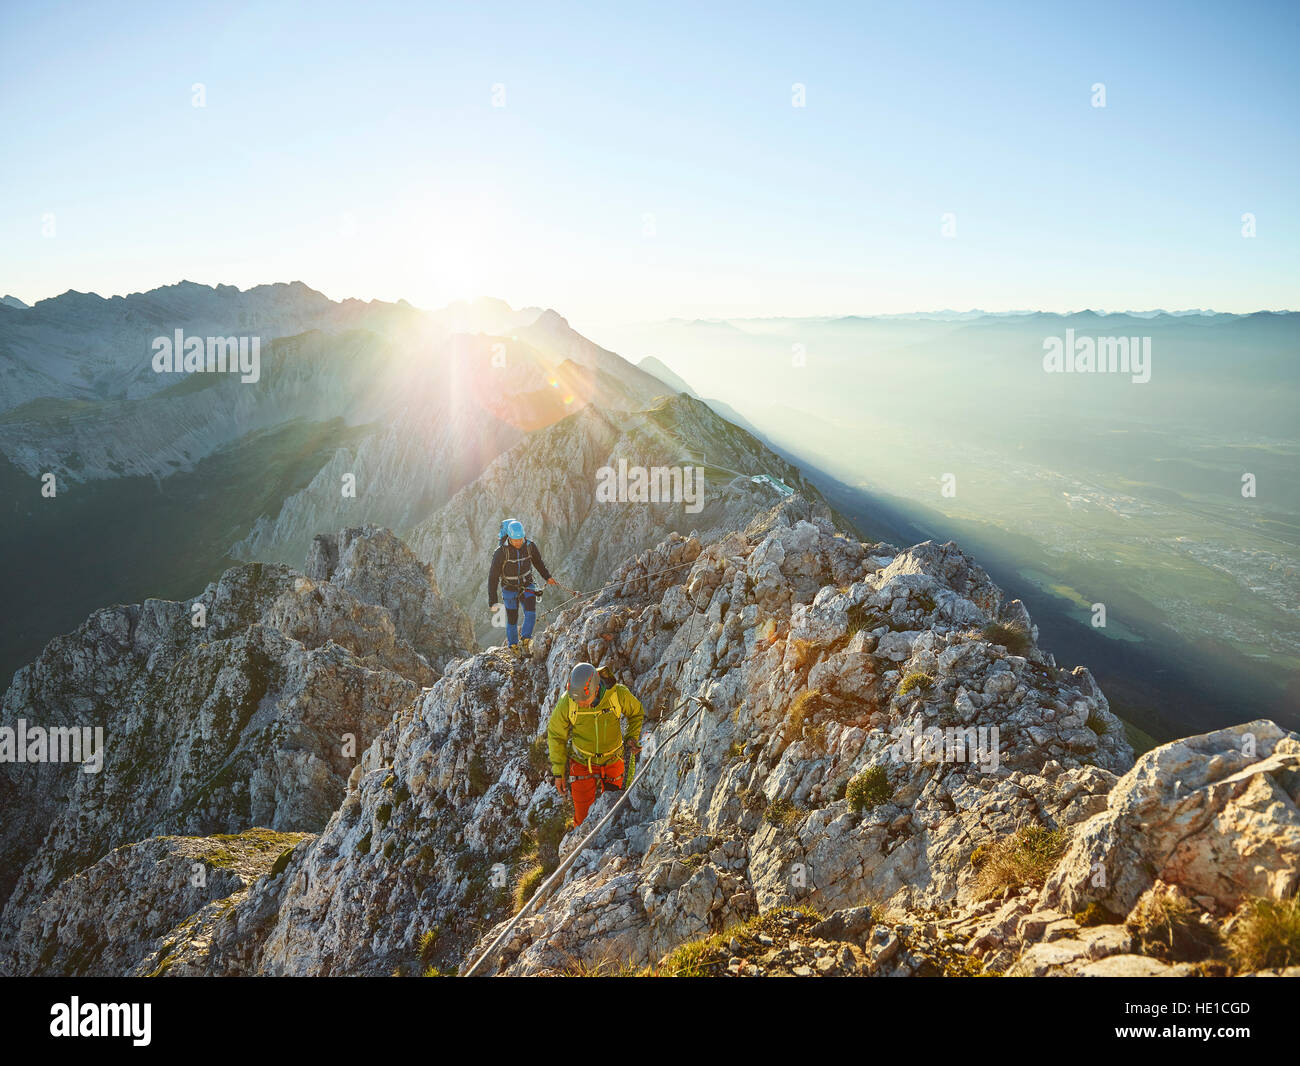 Sunrise on ridge, via ferrata, two climbers attached to steel cable, Nordkette Innsbruck, Tyrol, Austria - Stock Image